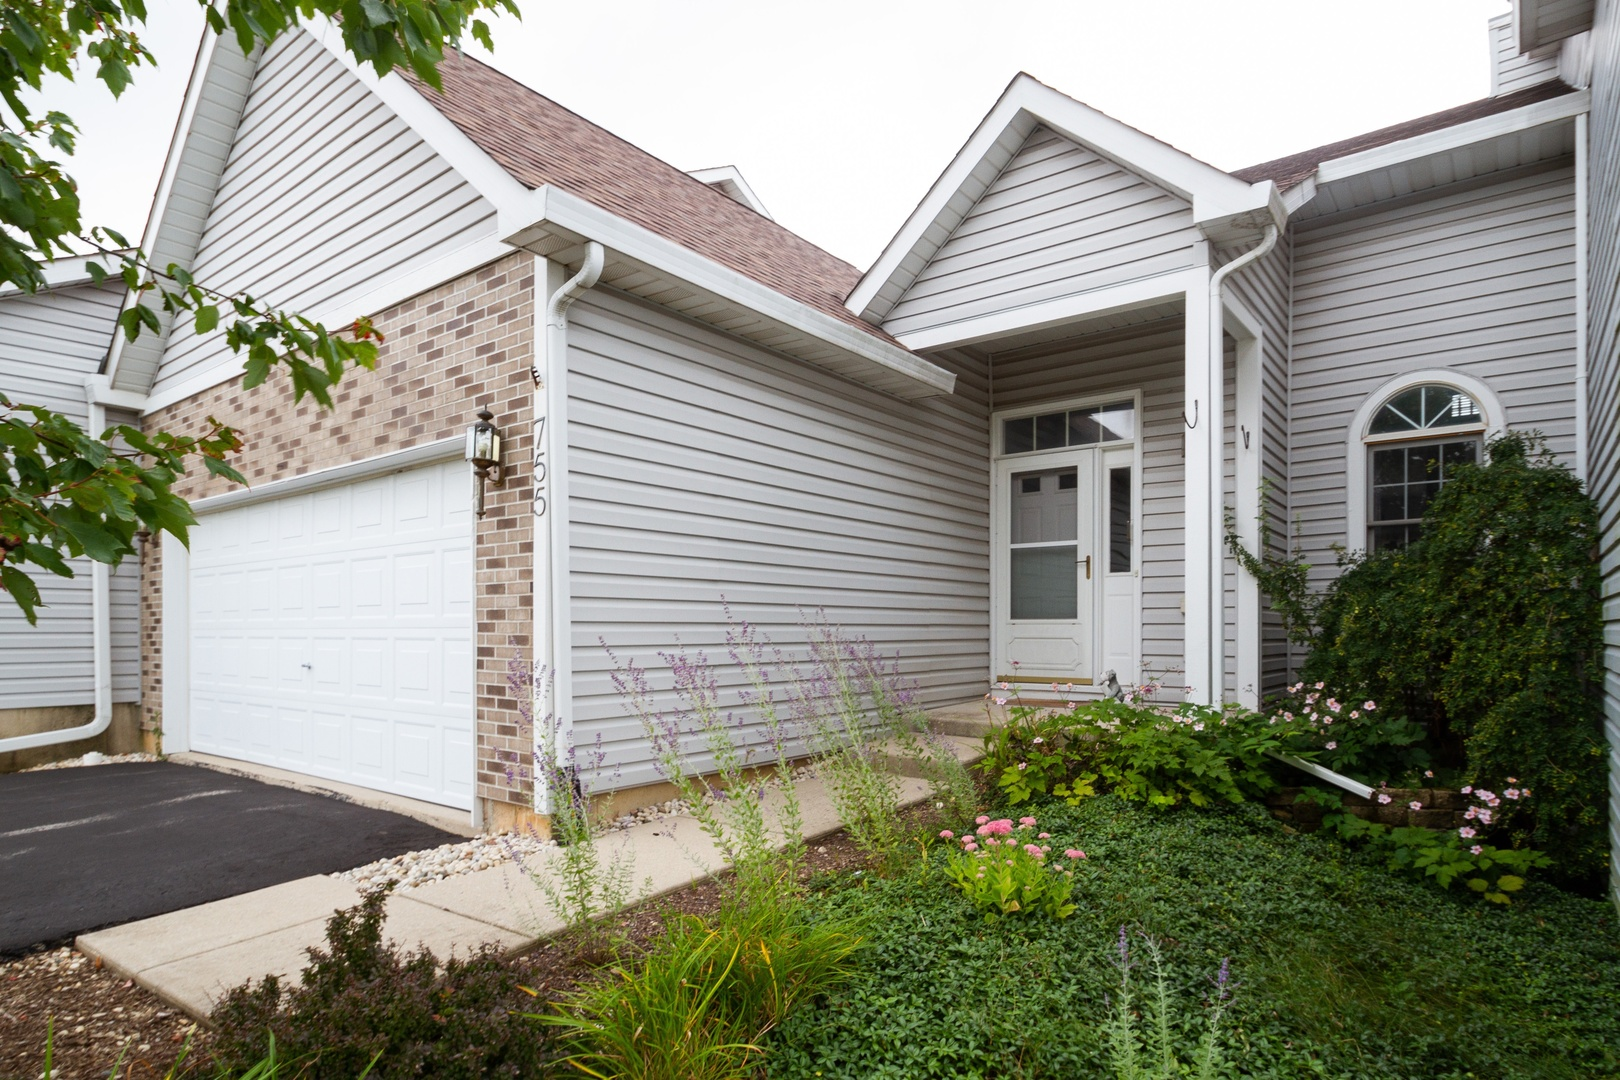 Photo for 755 Duvall Drive, Woodstock, IL 60098 (MLS # 10510626)